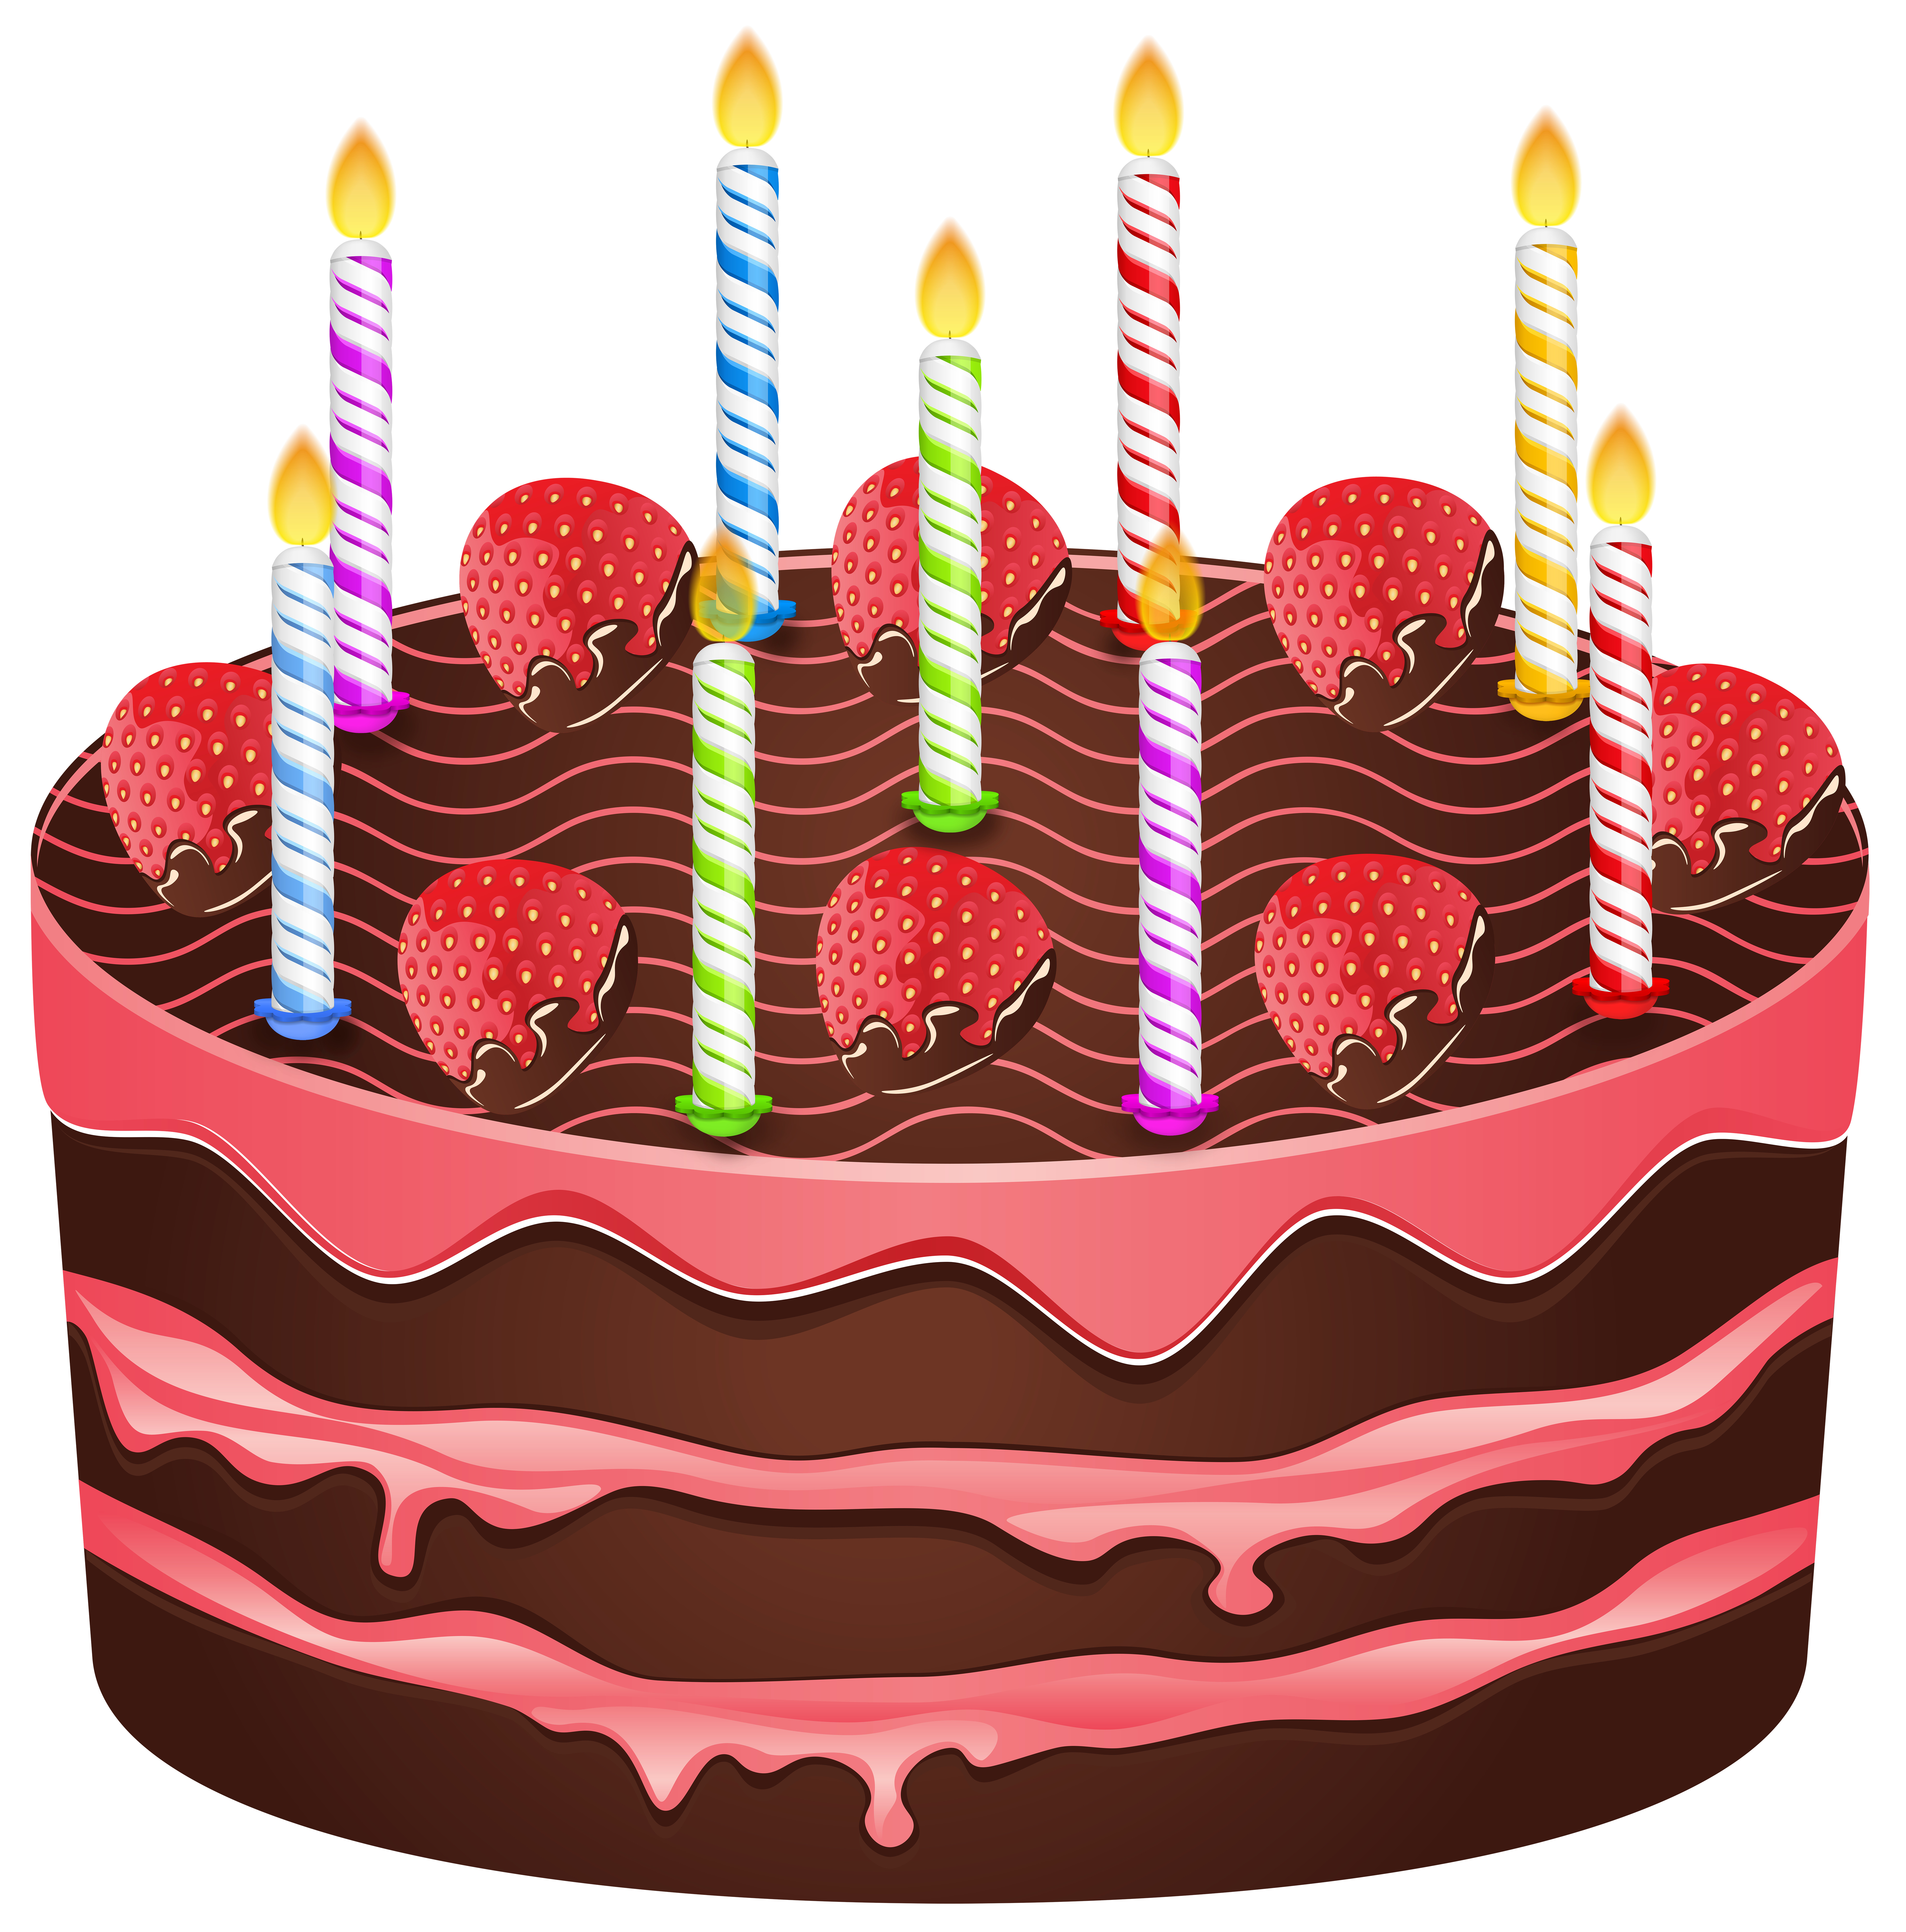 Christmas birthday cake transparent clipart png free stock Birthday Cake PNG Transparent Clip Art Image png free stock